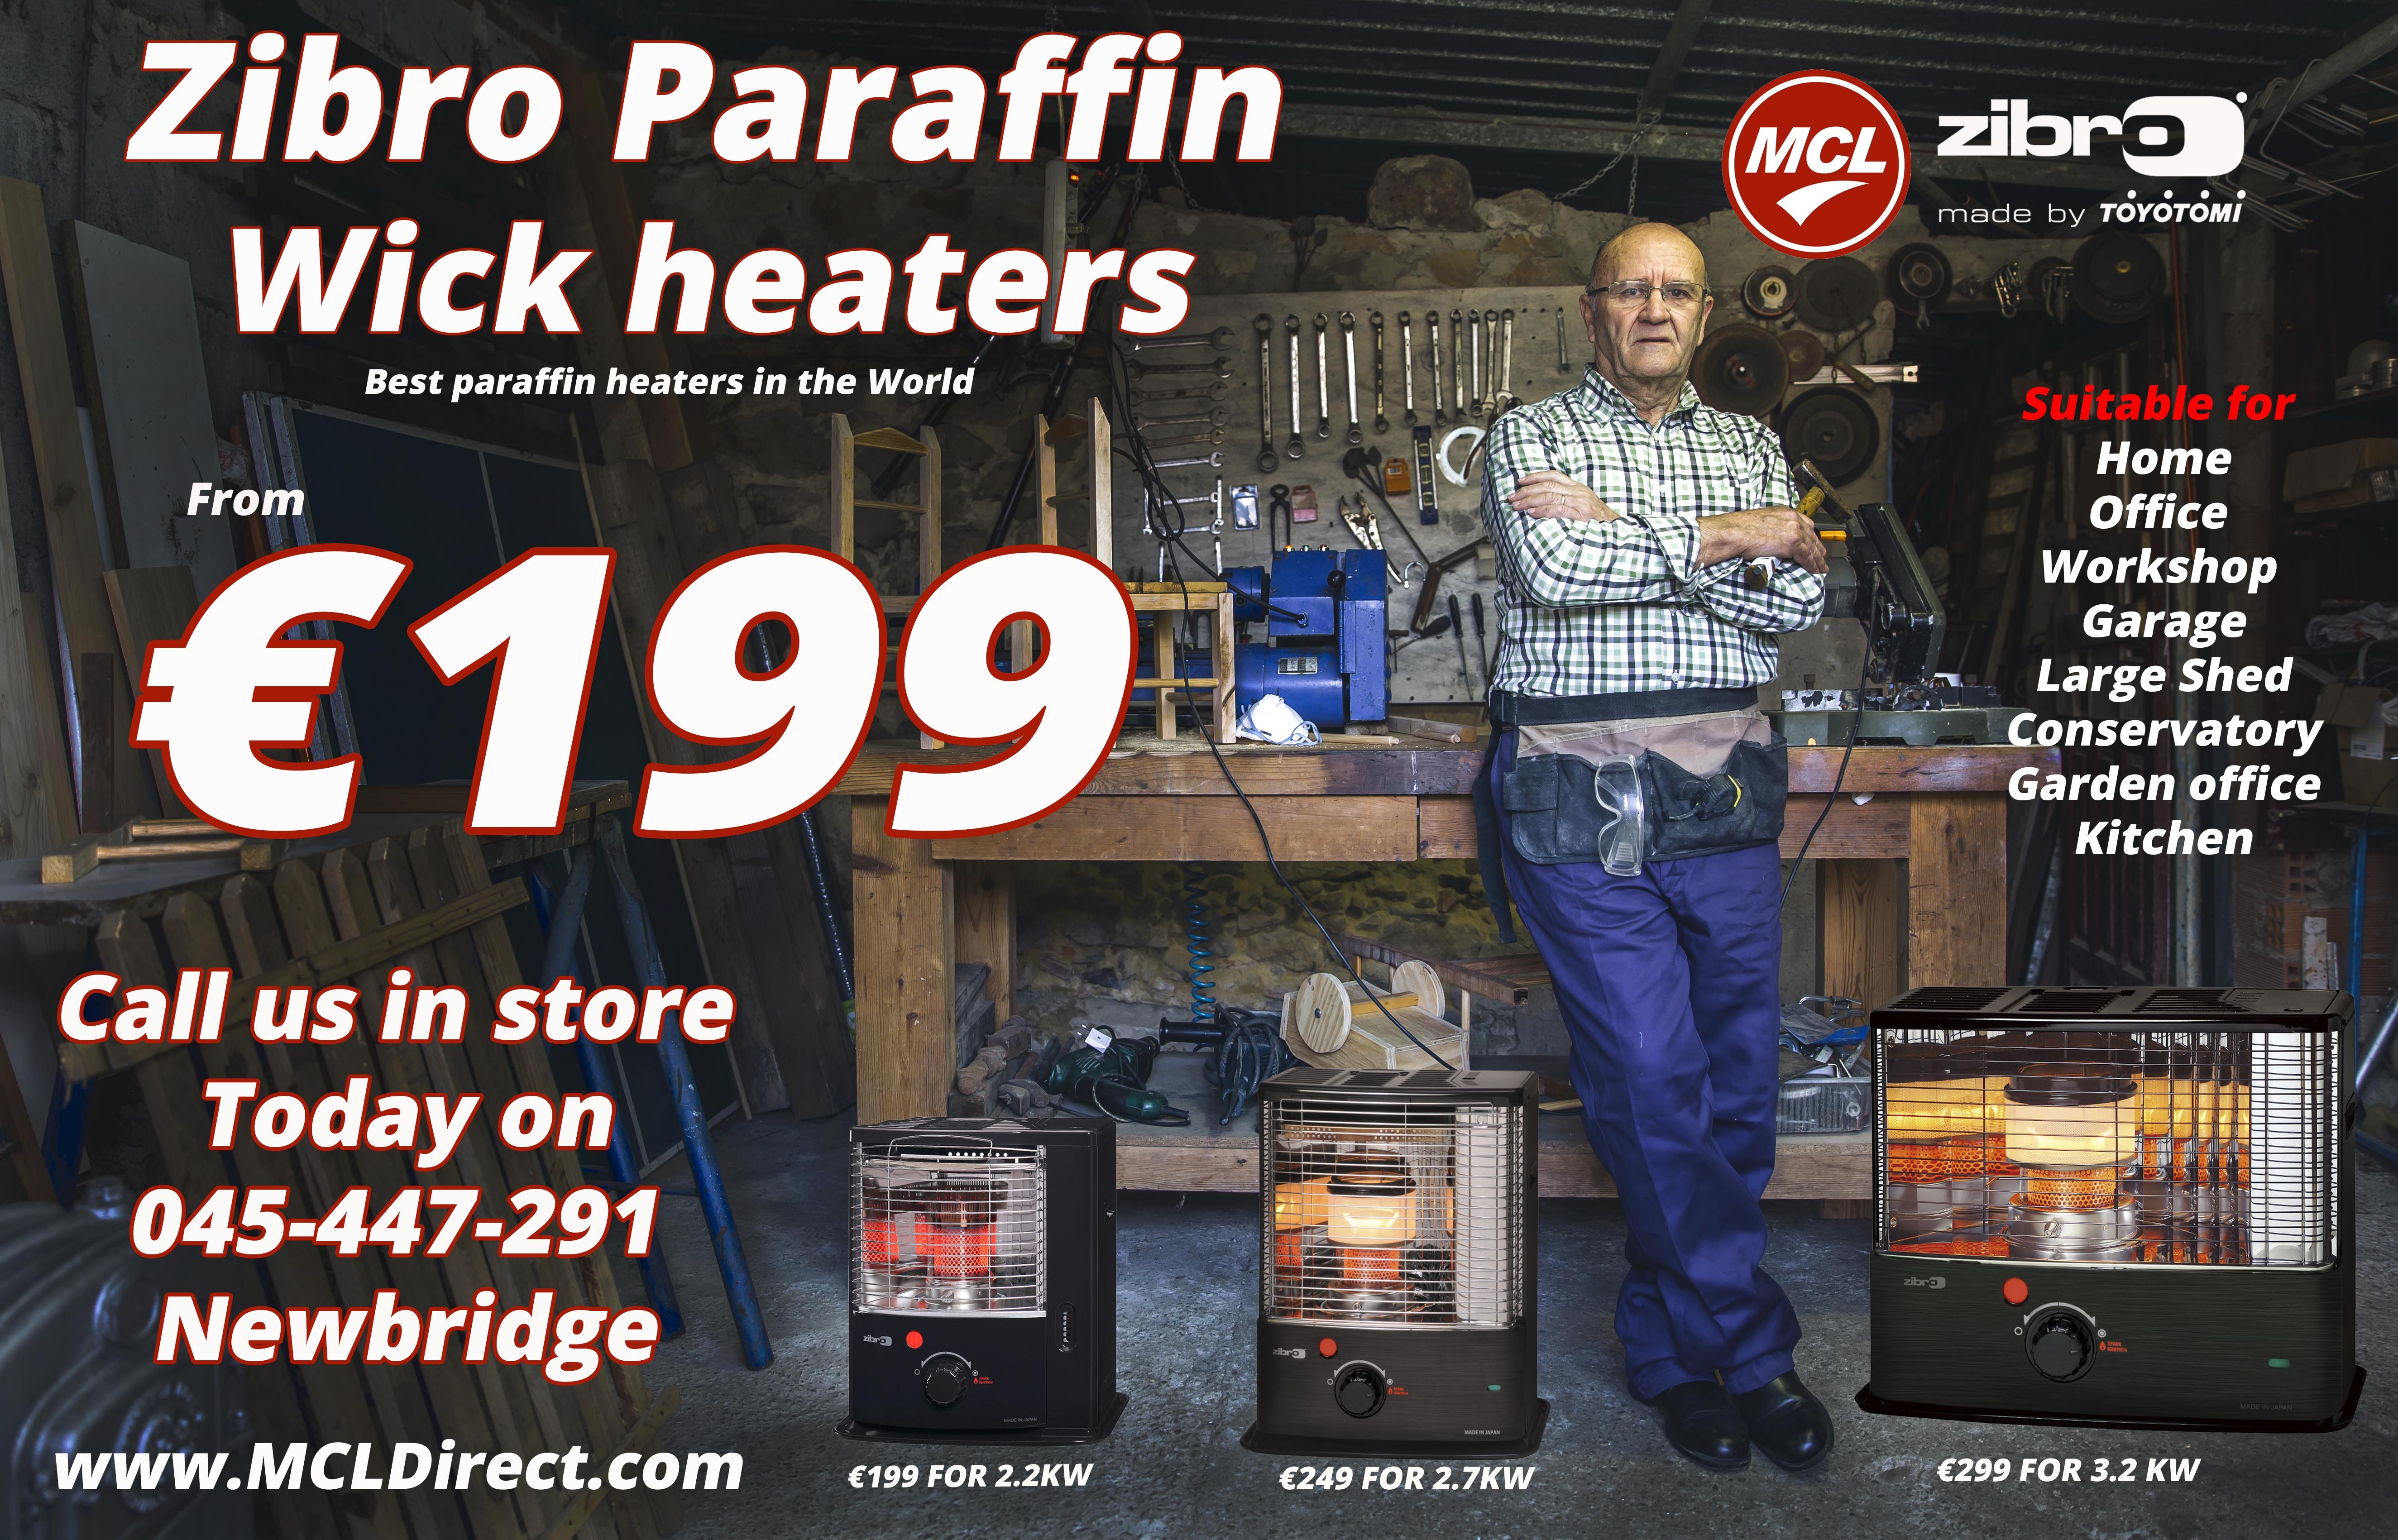 best paraffin heaters in the world